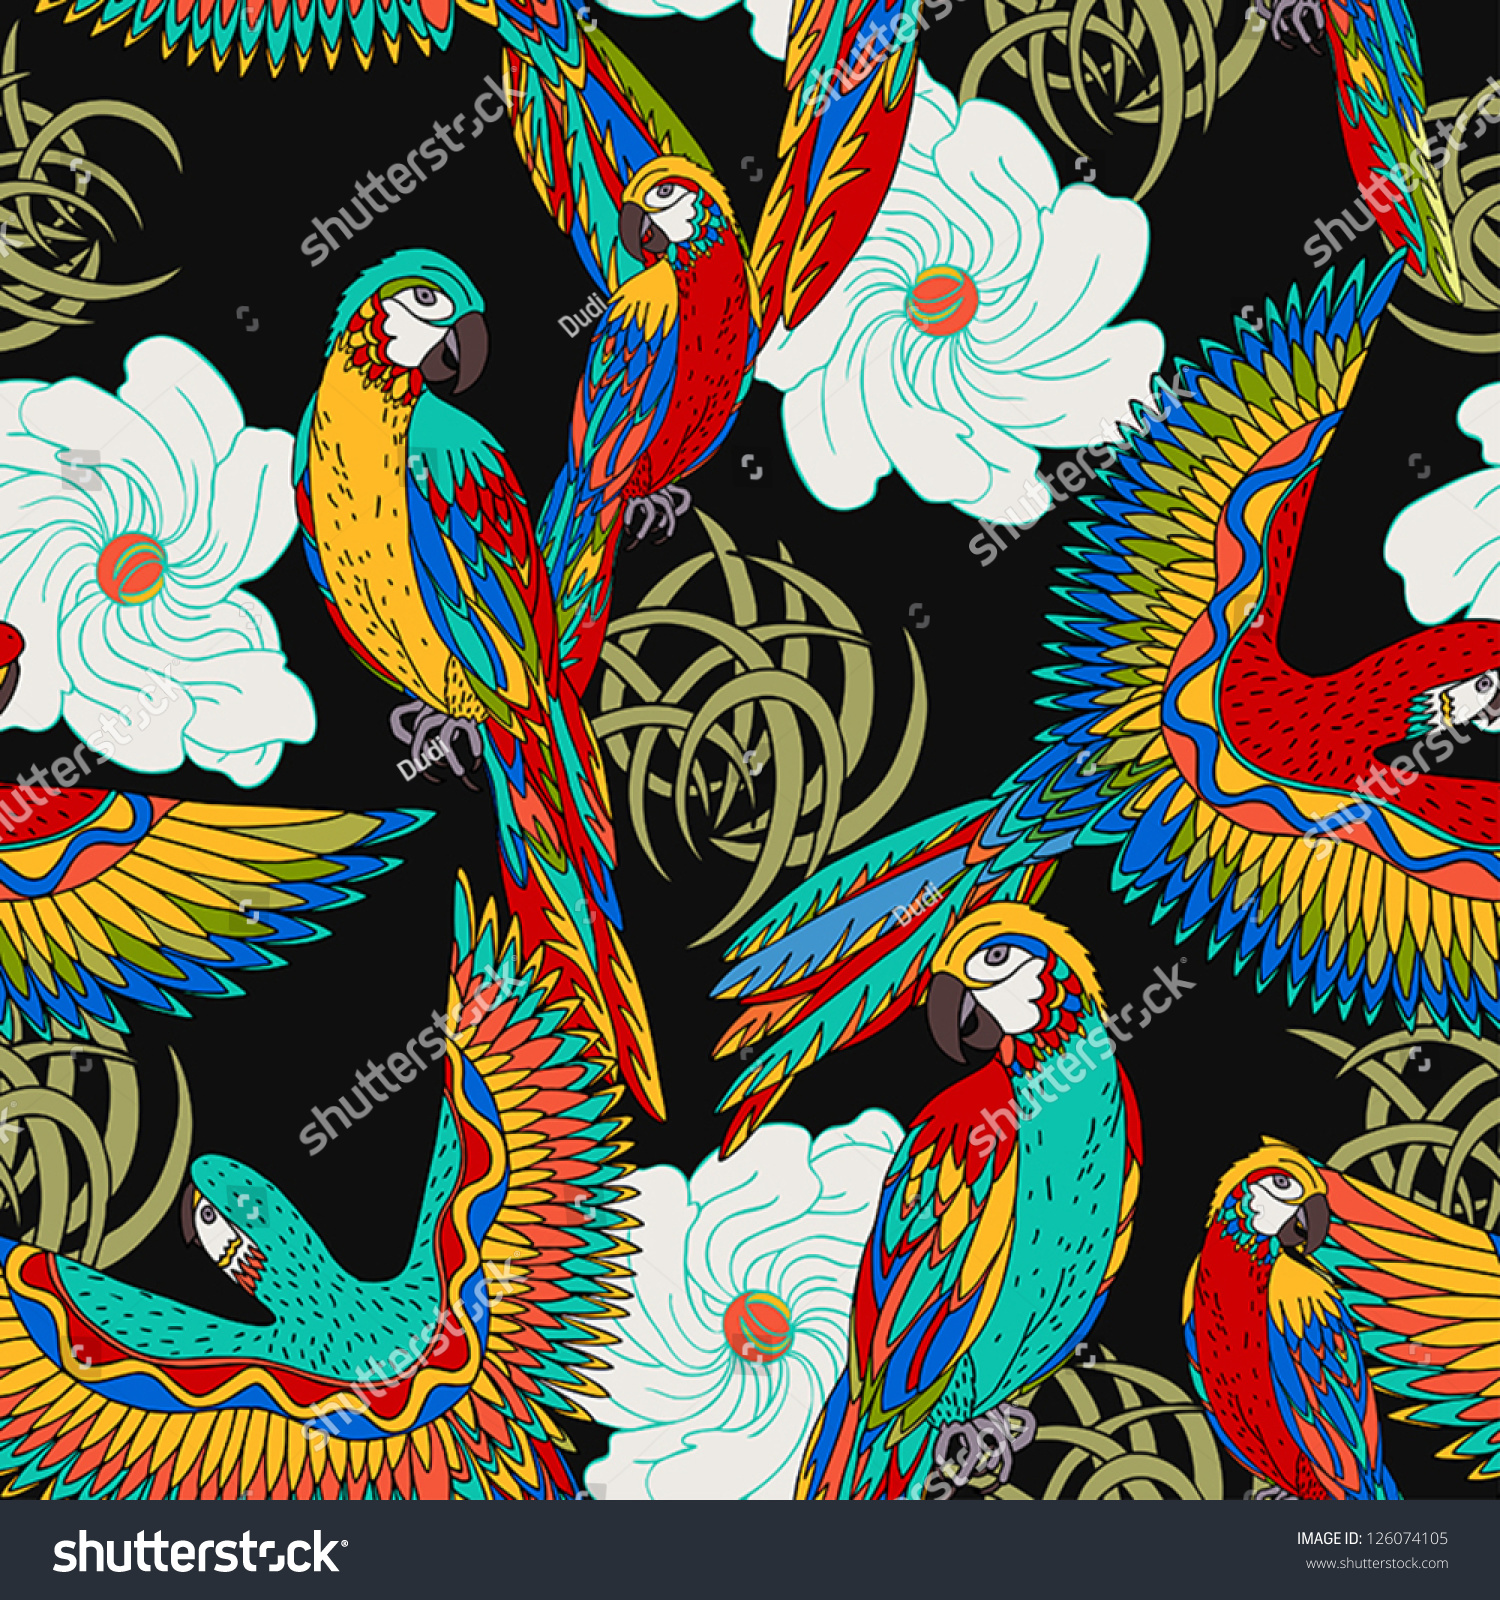 Vintage Beach Background Stock Photo 112981333: Vintage, Colorful Background With Parrots, Theme And